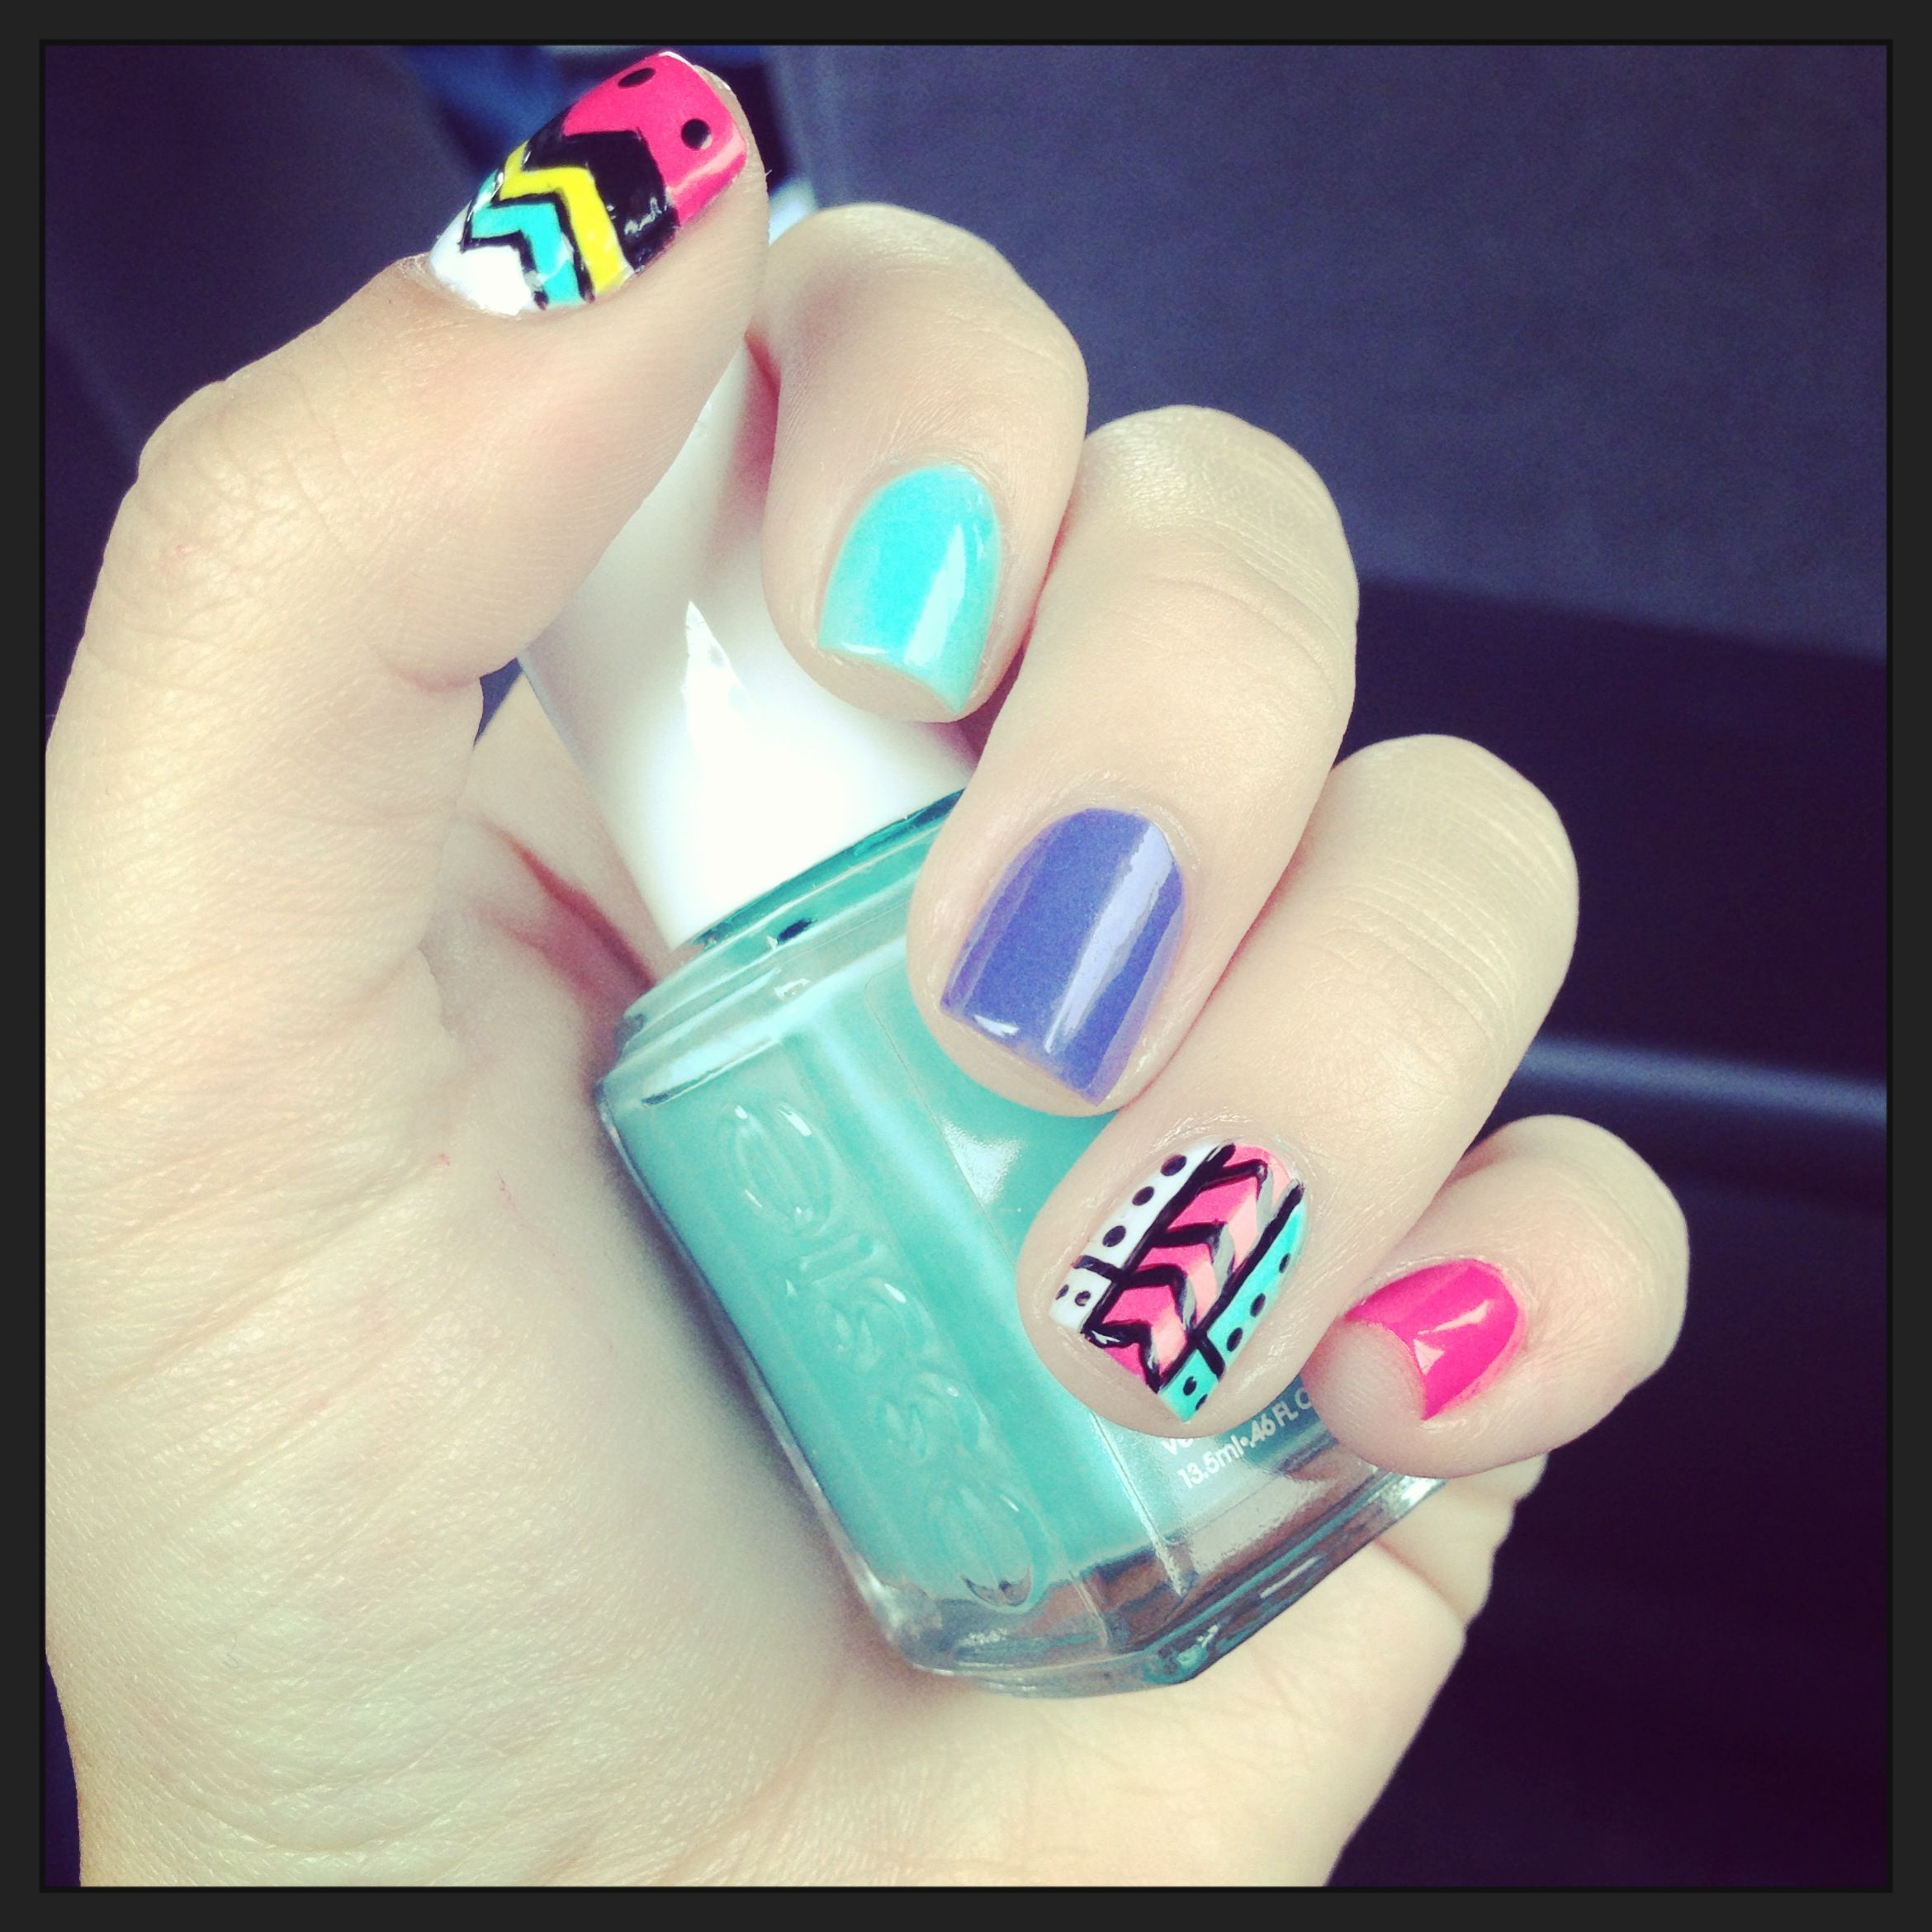 Hipster Nails | Nails' Lovers | Pinterest | Mani pedi ...